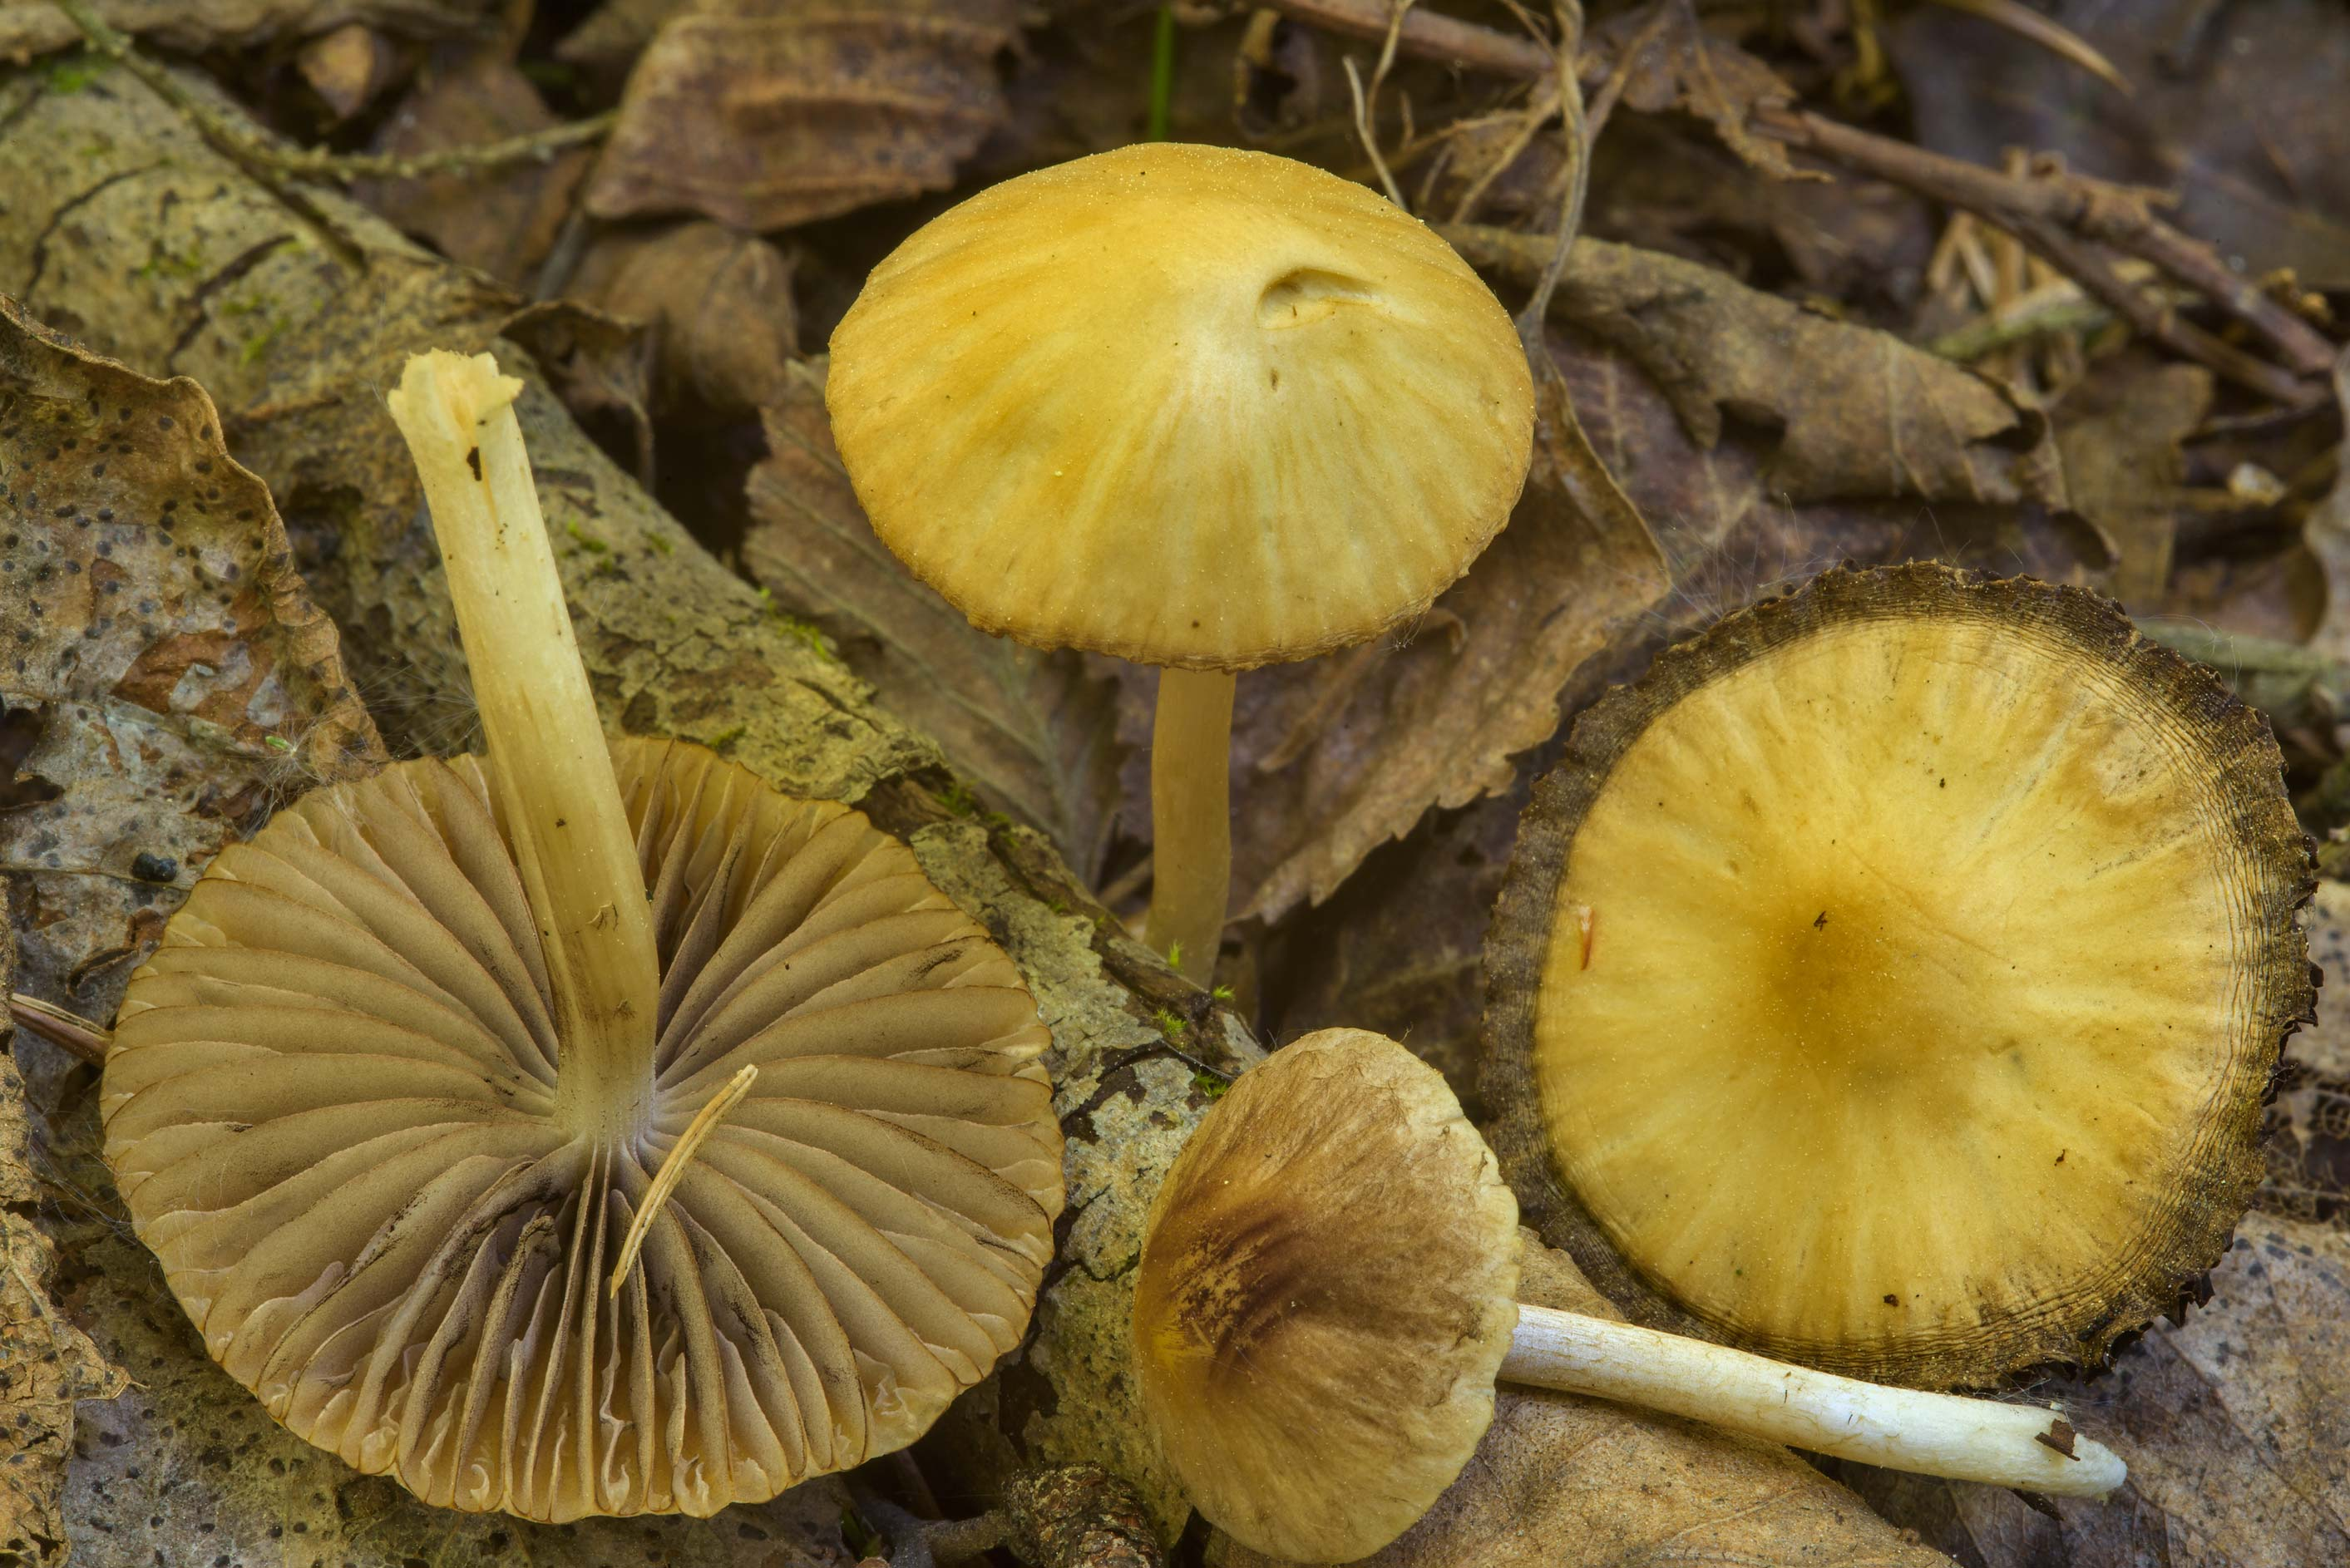 Small brittlestem mushrooms (Psathyrella obtusata...north from St.Petersburg, Russia